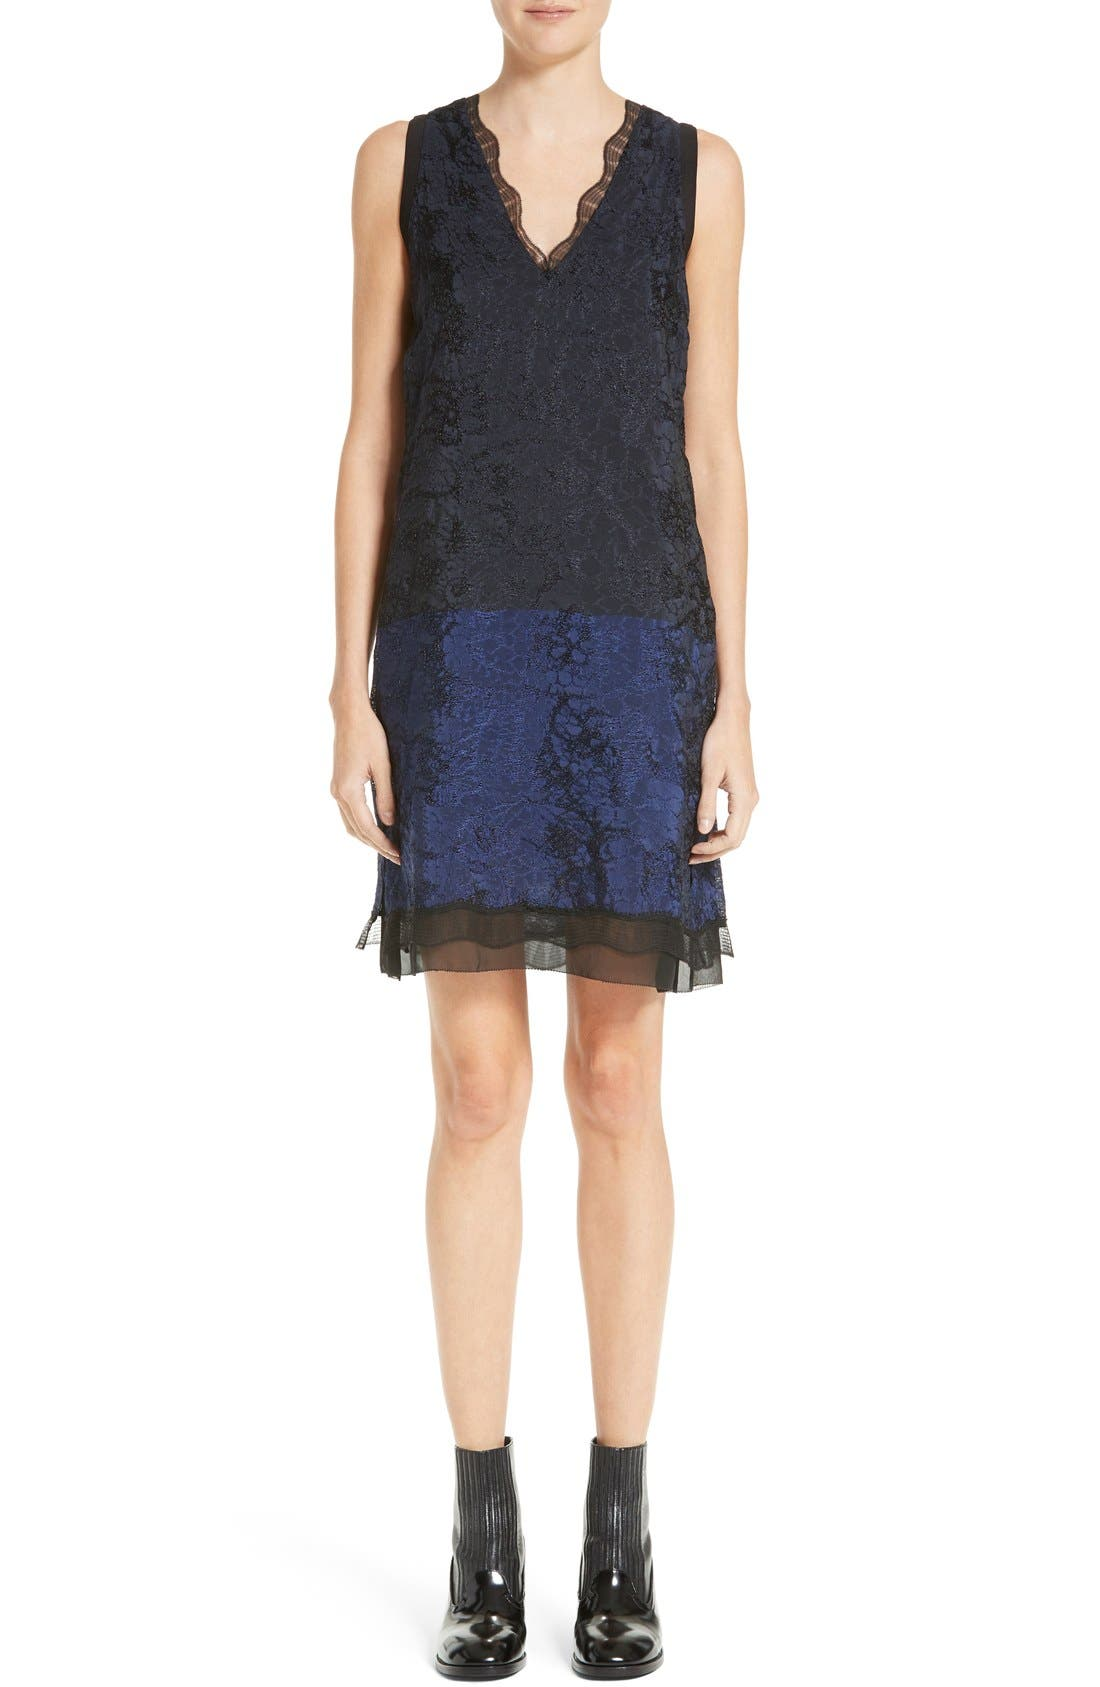 3.1 PHILLIP LIM Lace Shift Dress